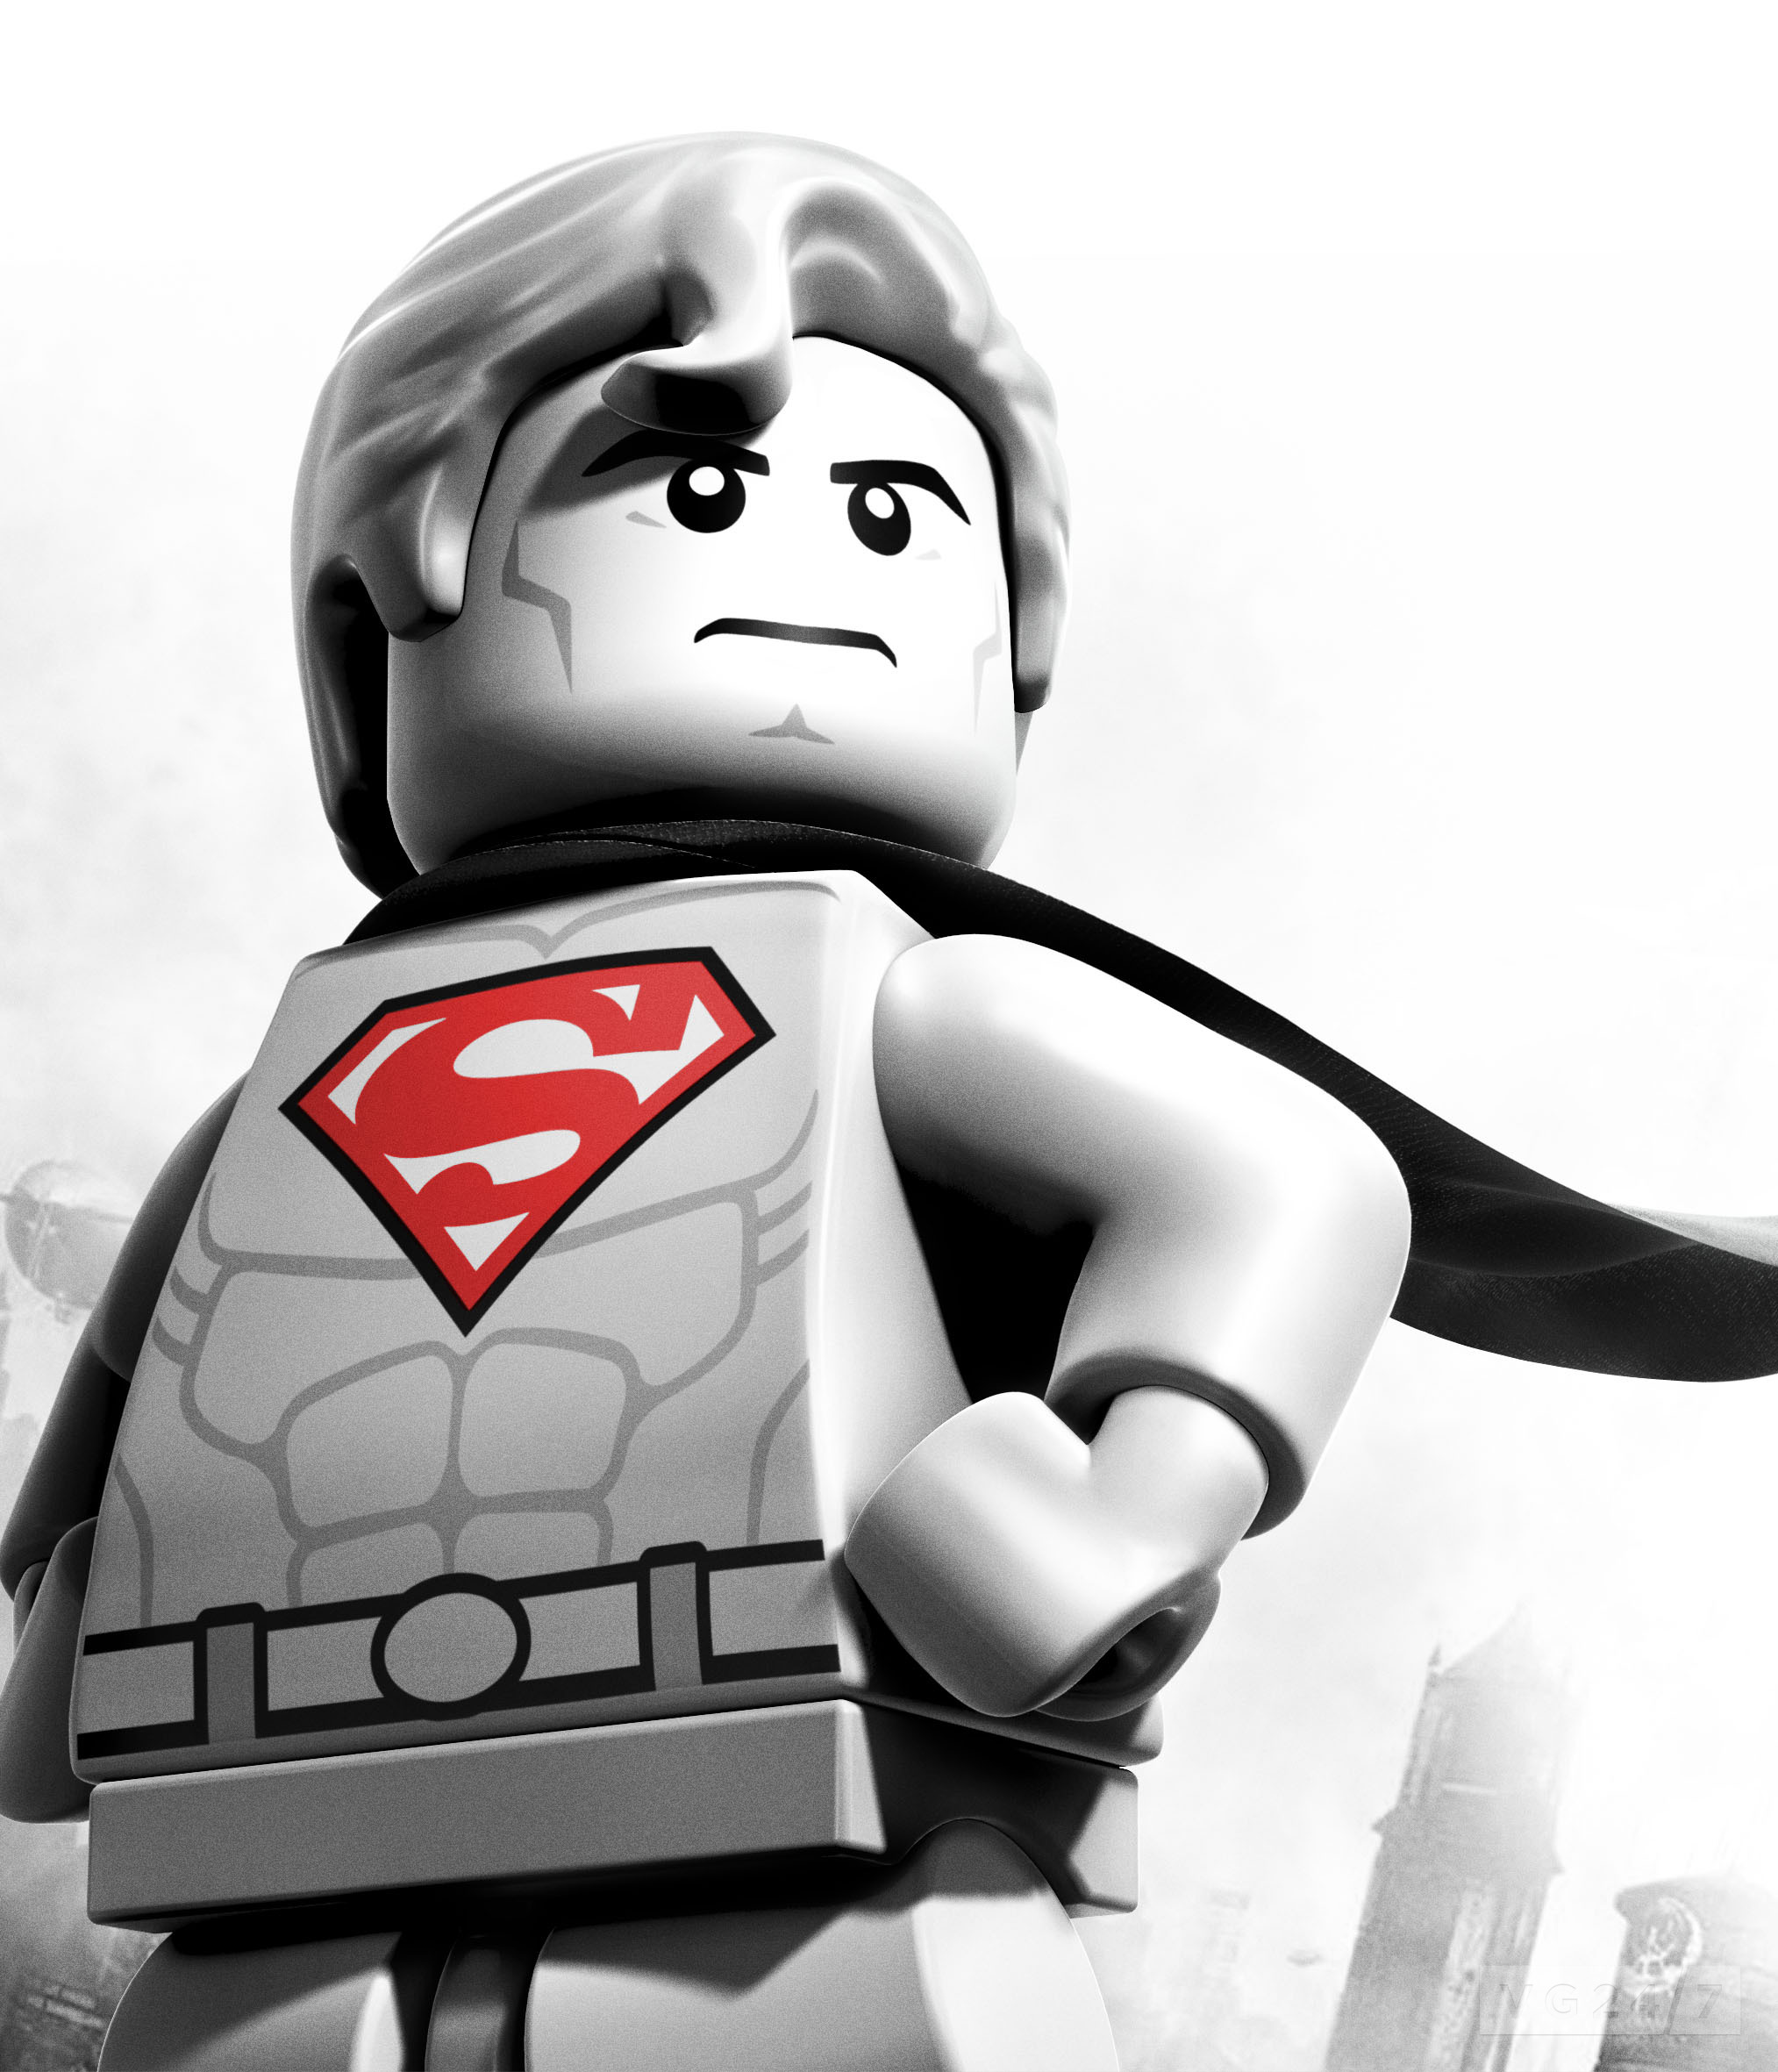 More Lego Batman 2 Black And White Teaser Pics